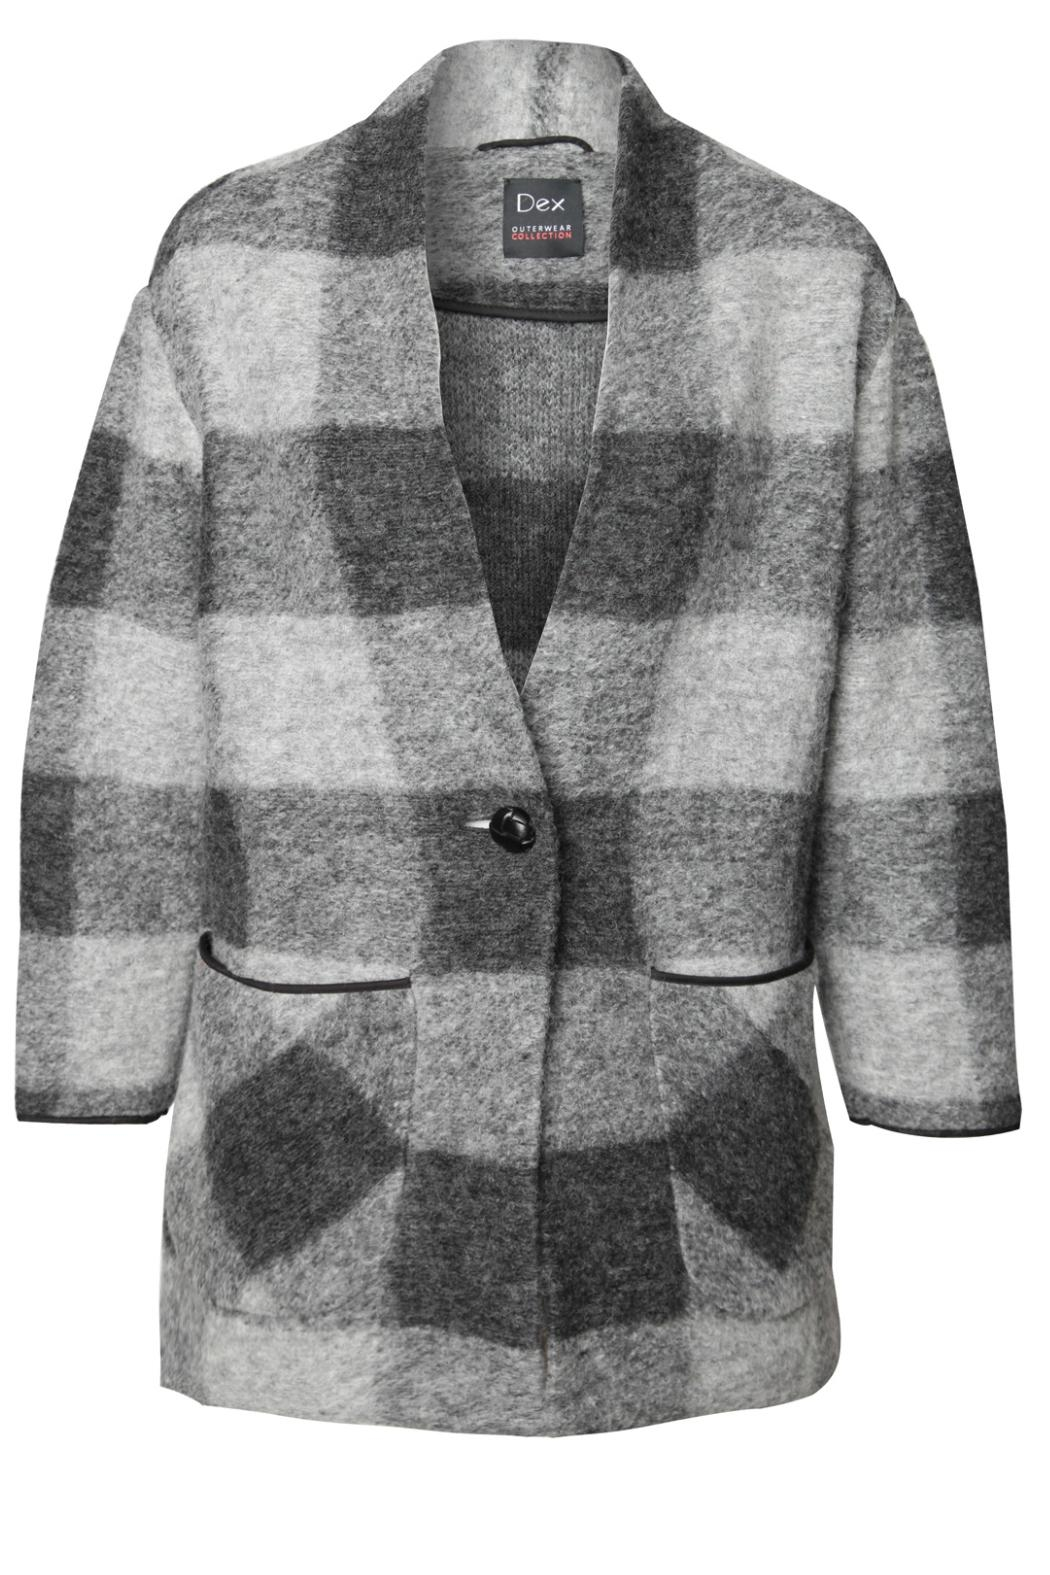 Dex Plaid Swacket - Main Image